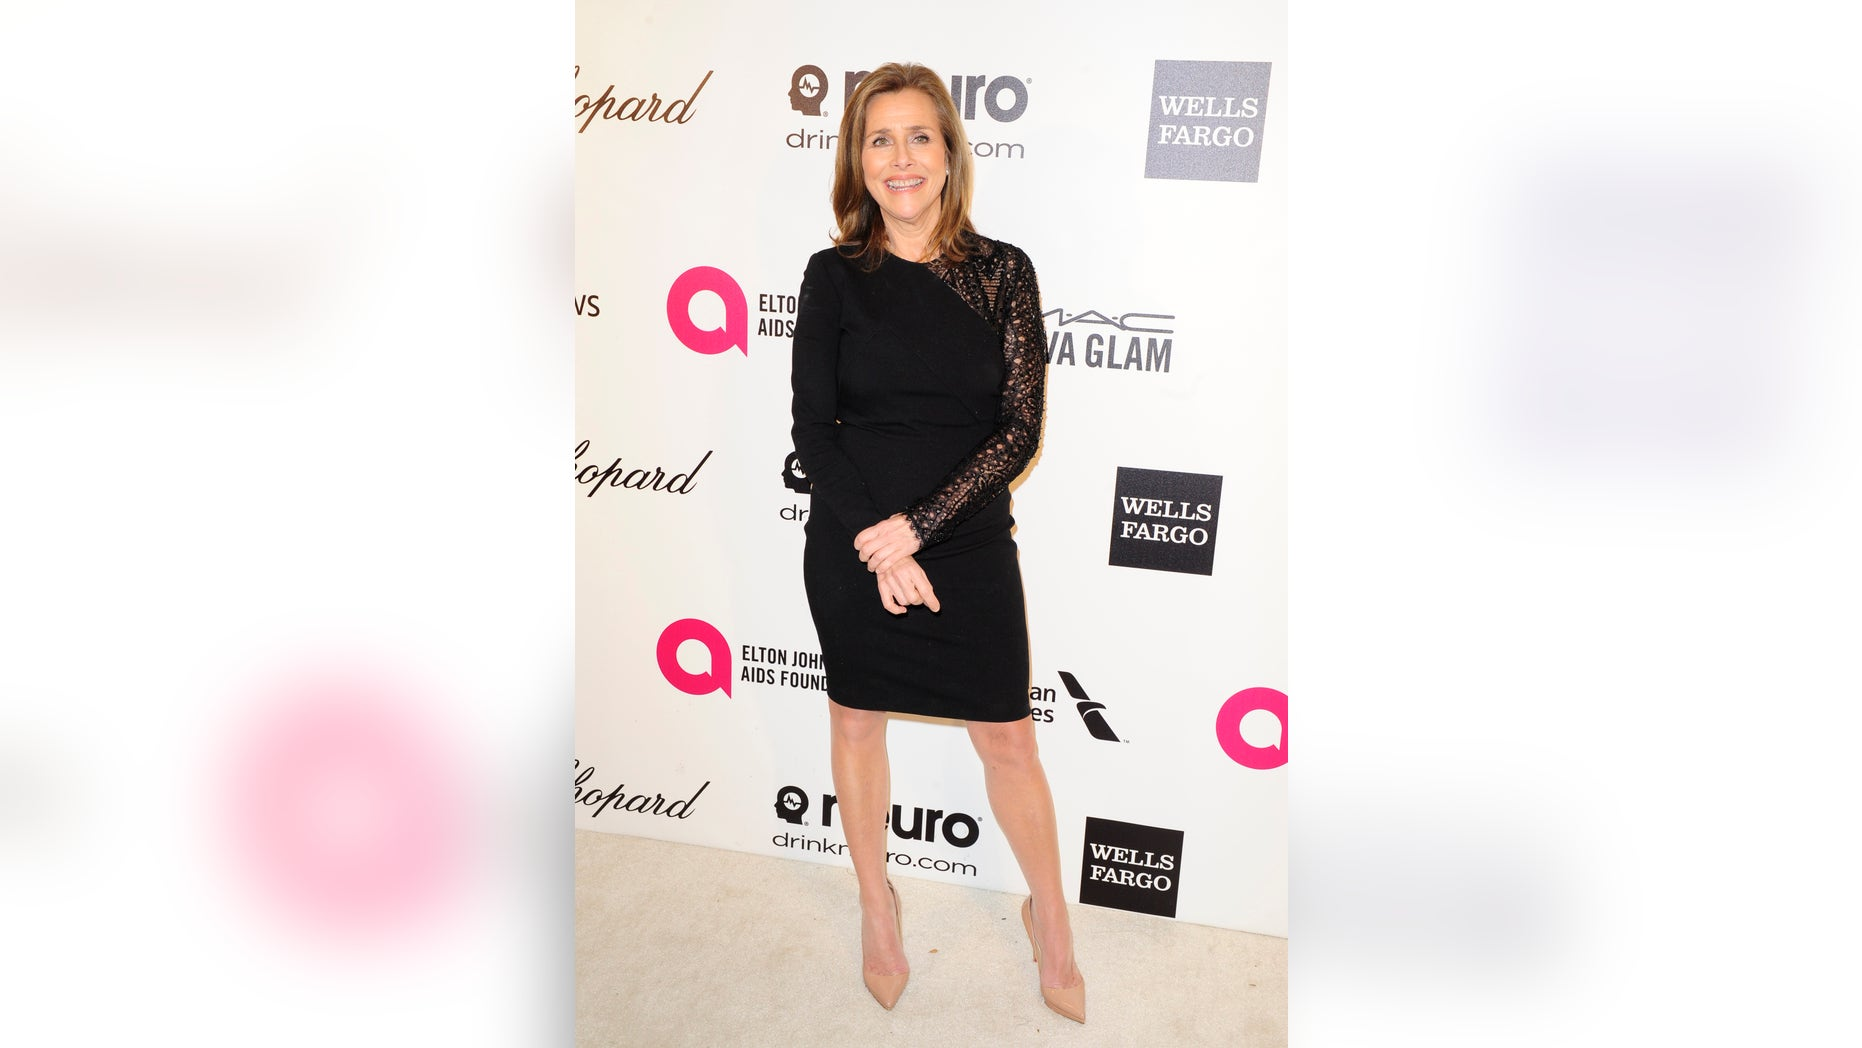 March 2, 2014. Television journalist Meredith Vieira arrives at the 2014 Elton John AIDS Foundation Oscar Party in West Hollywood, California.